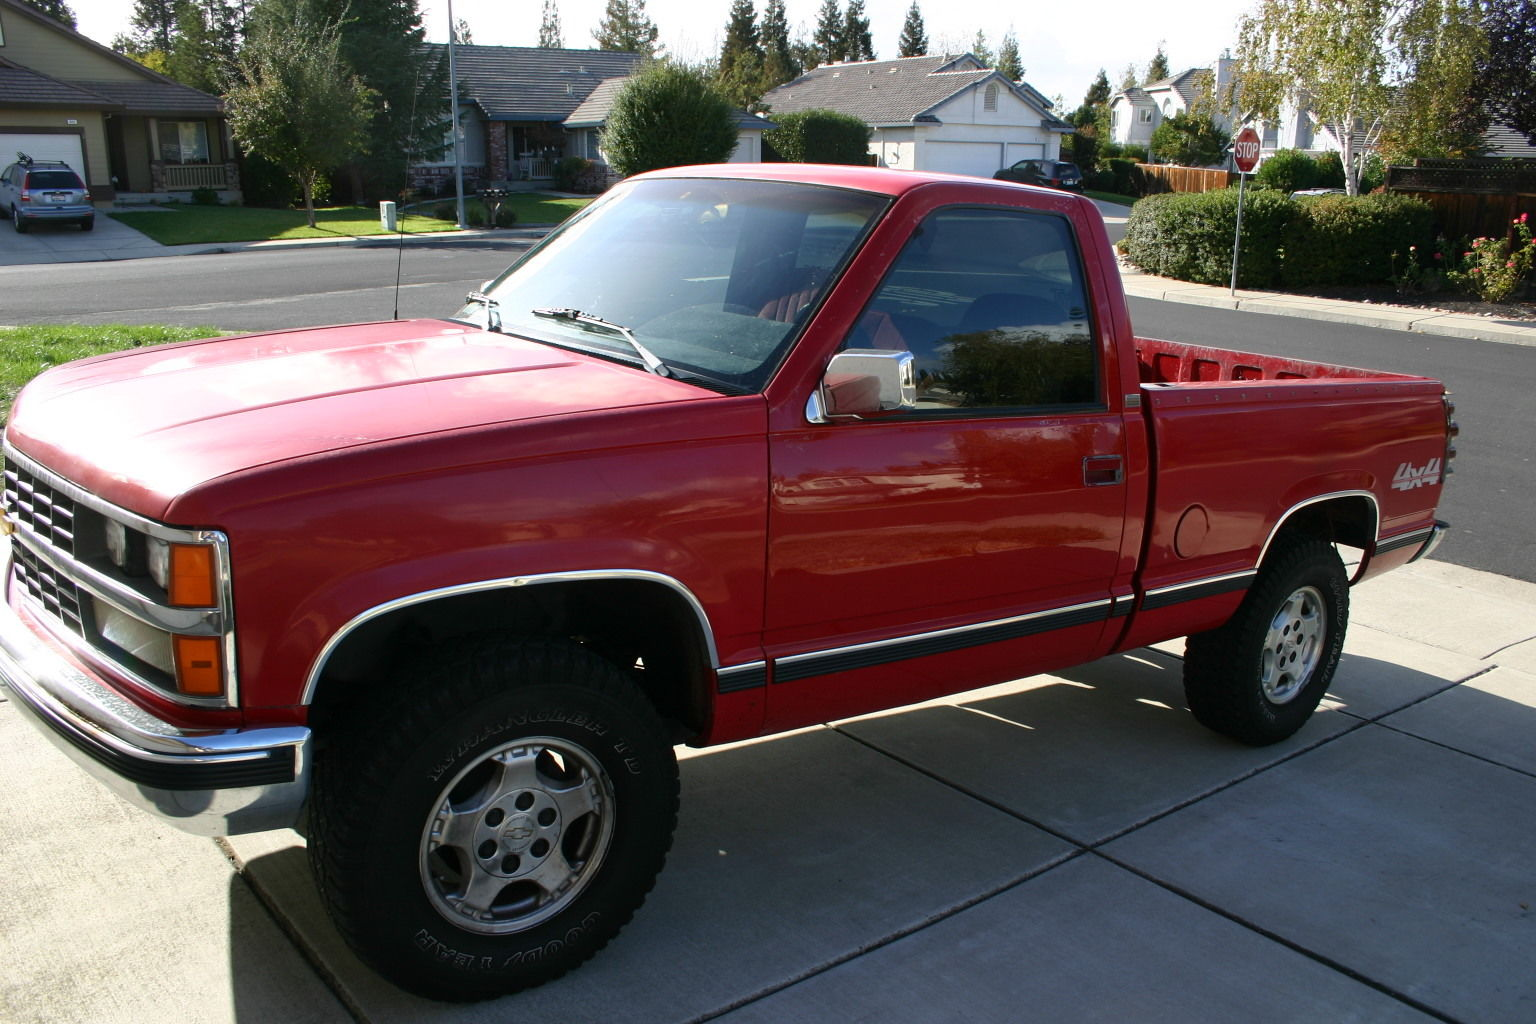 1989 chevy k1500 truck 4x4 silverado package classic. Black Bedroom Furniture Sets. Home Design Ideas